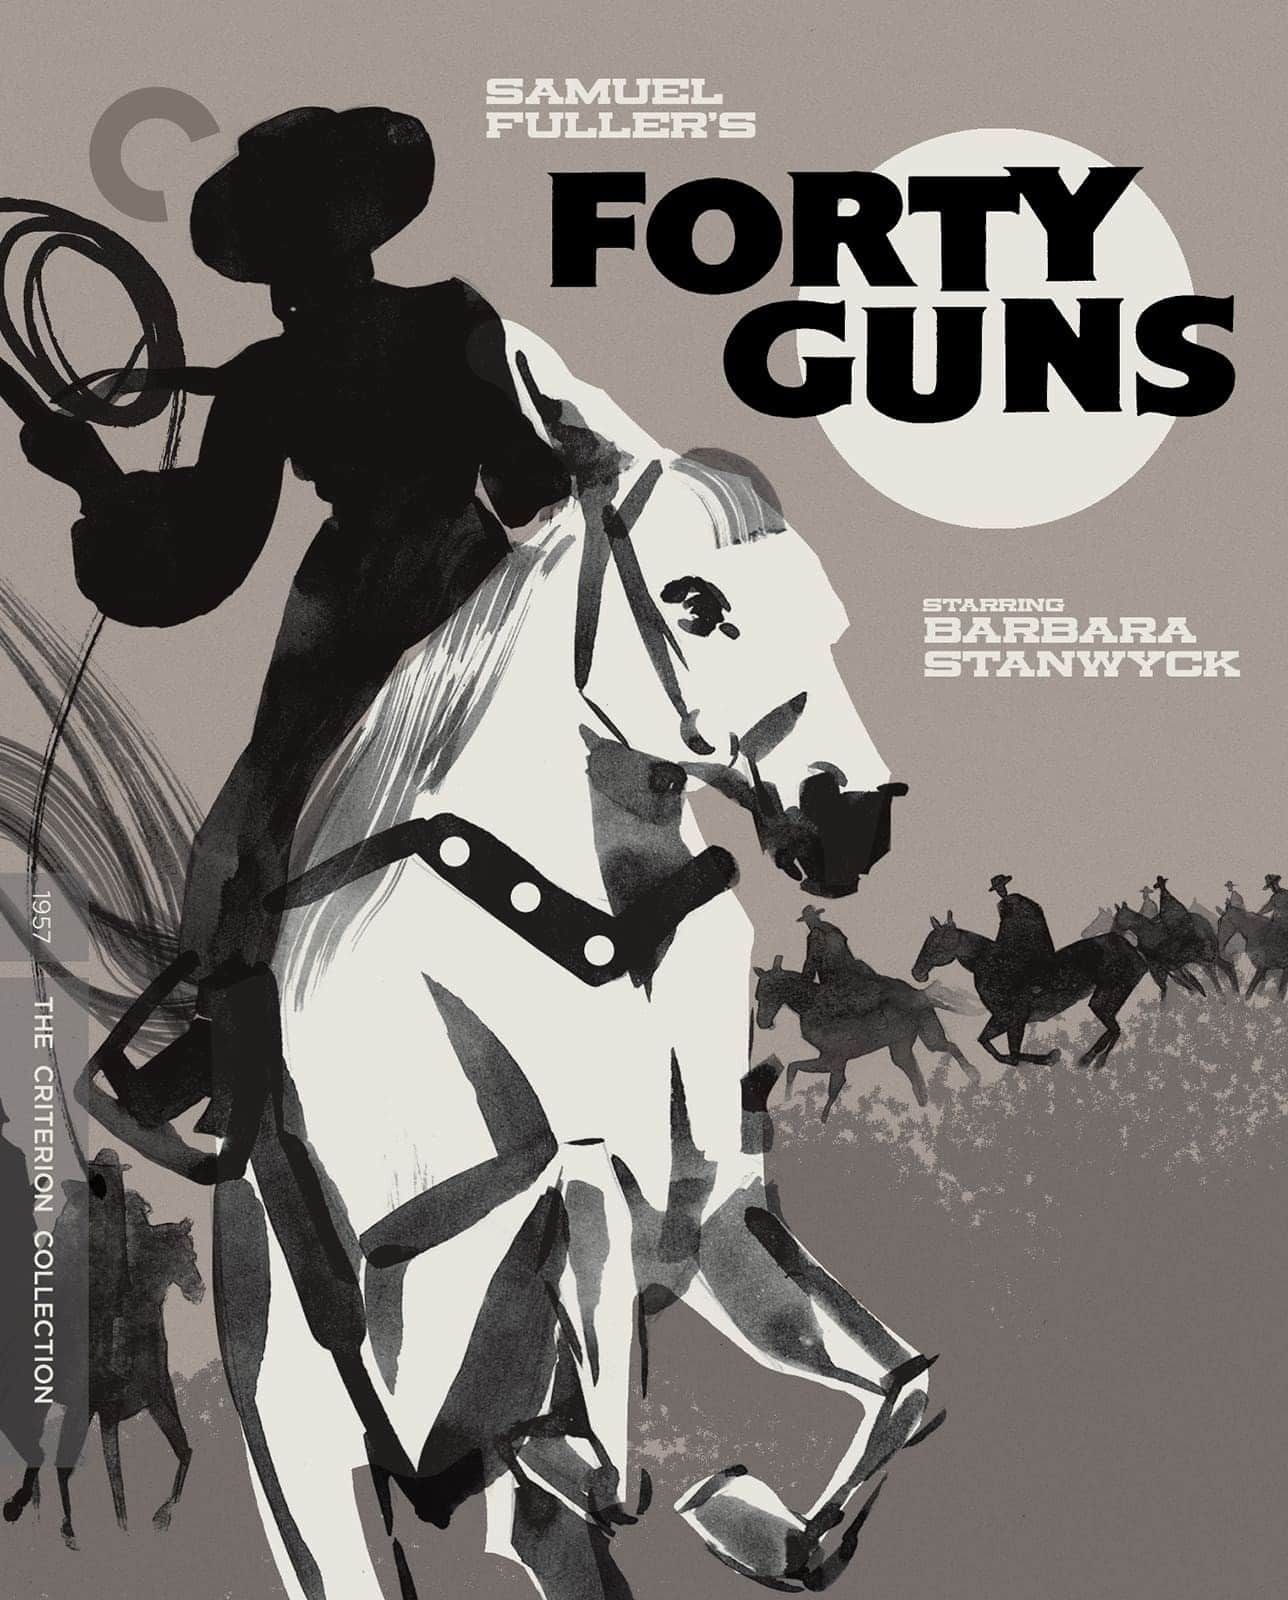 Criterion Collection Flash Sale - 50% Off